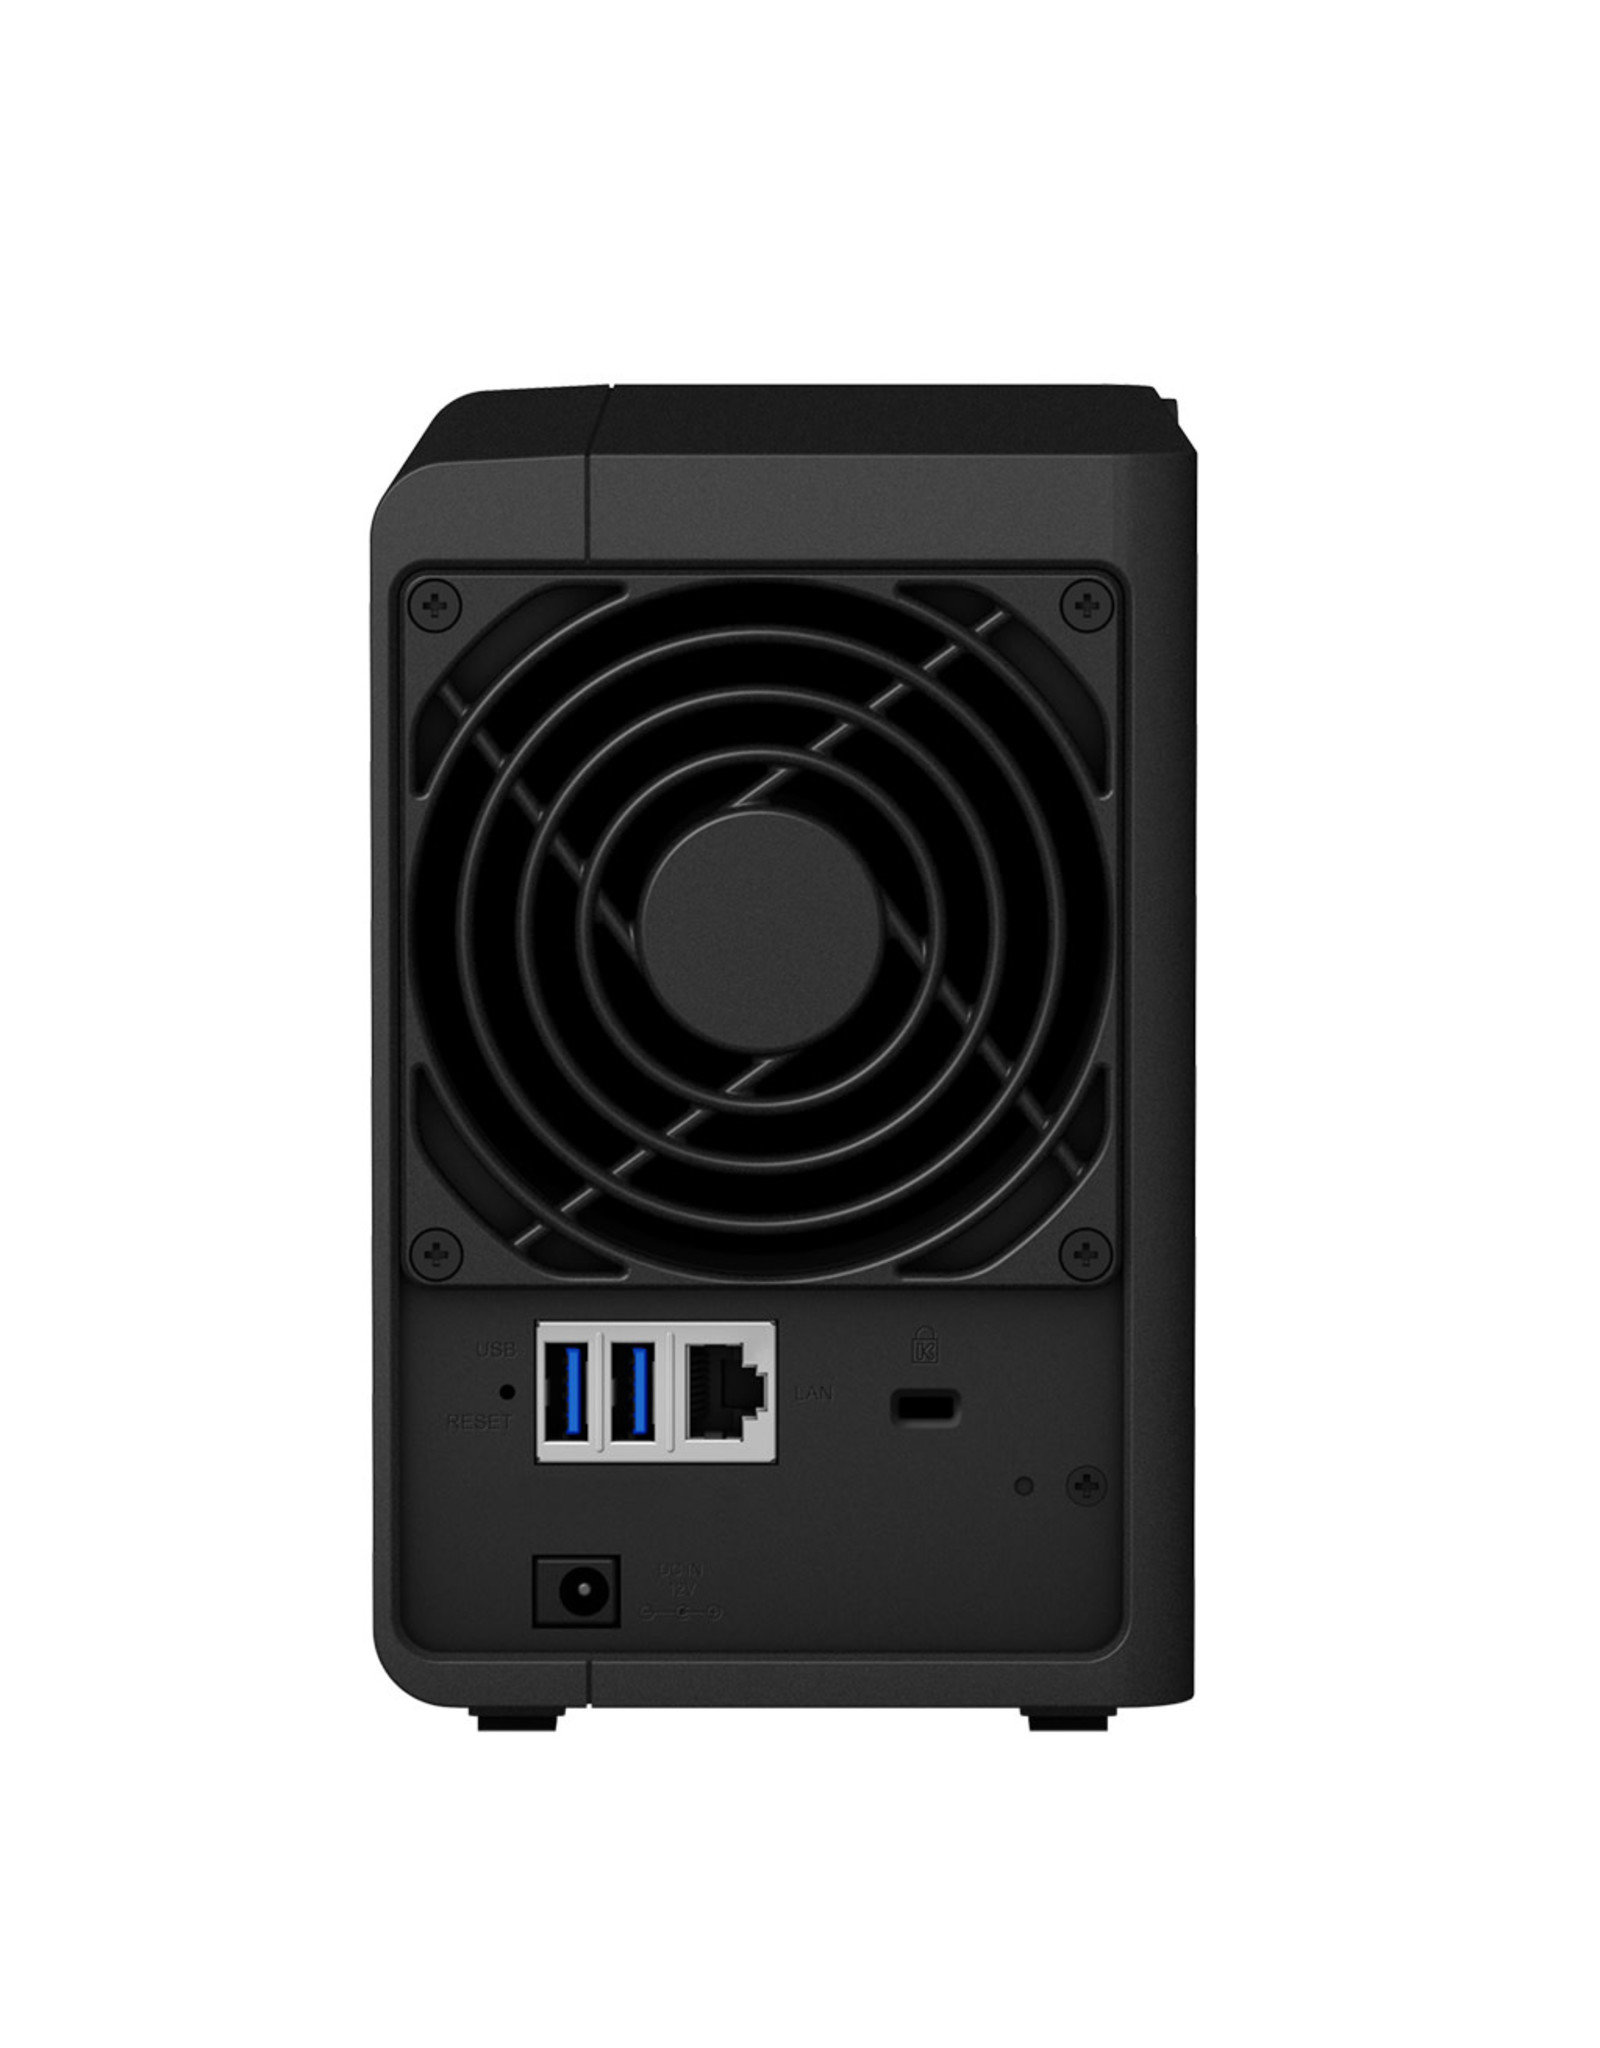 Synology Synology DS218 2-Bay Quad-core 1.4GHz NAS Server